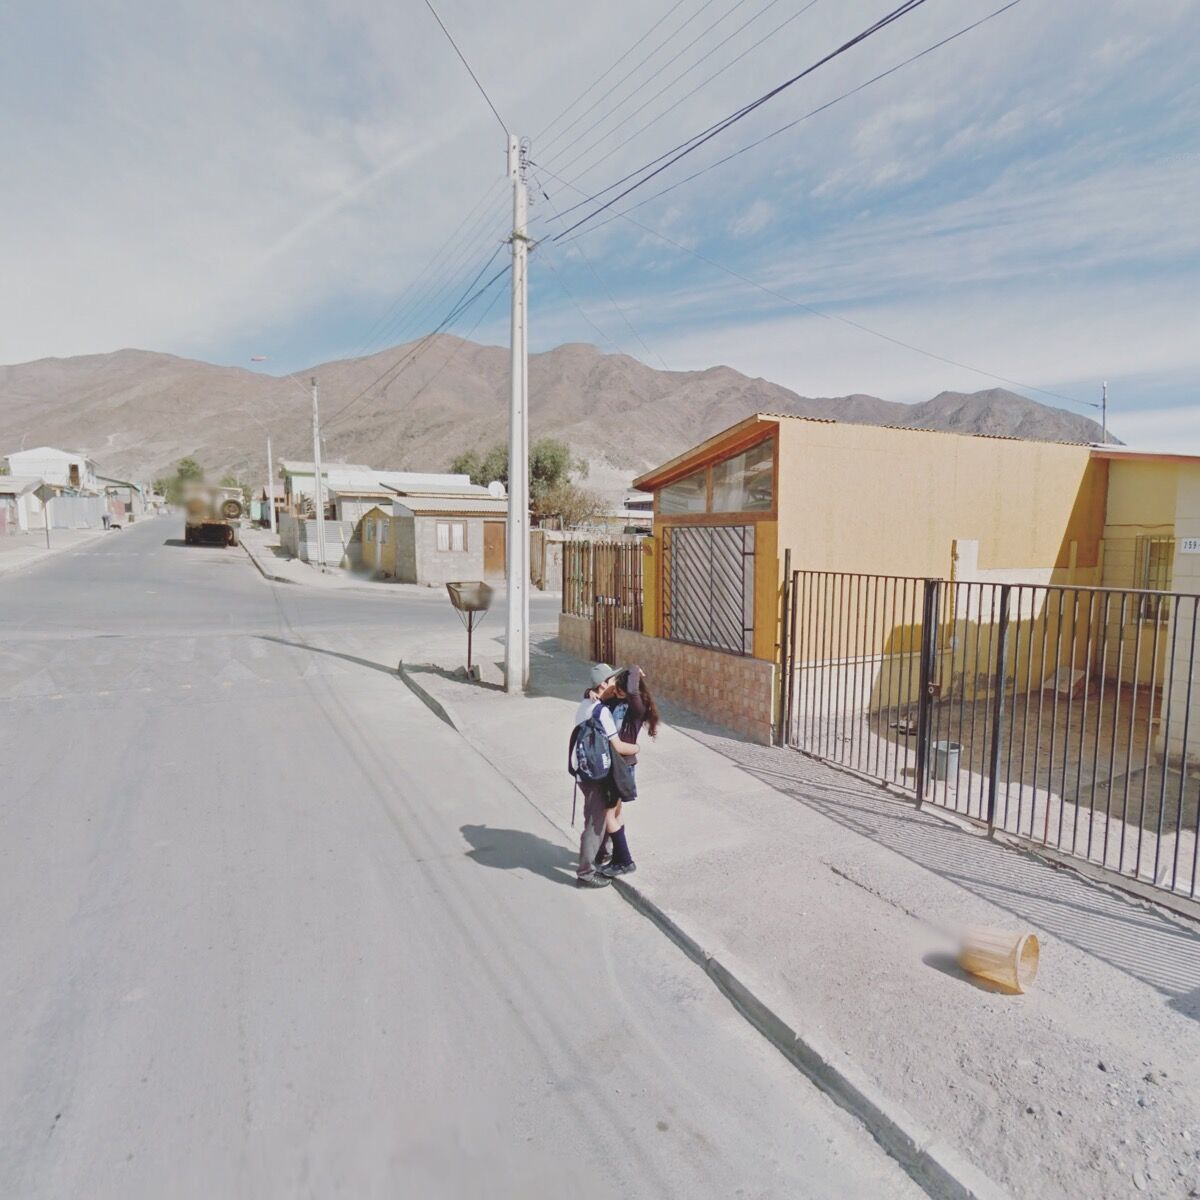 Chañaral, Atacama Region, Chile. Photograph by Jacqui Kenny via Google Street View.